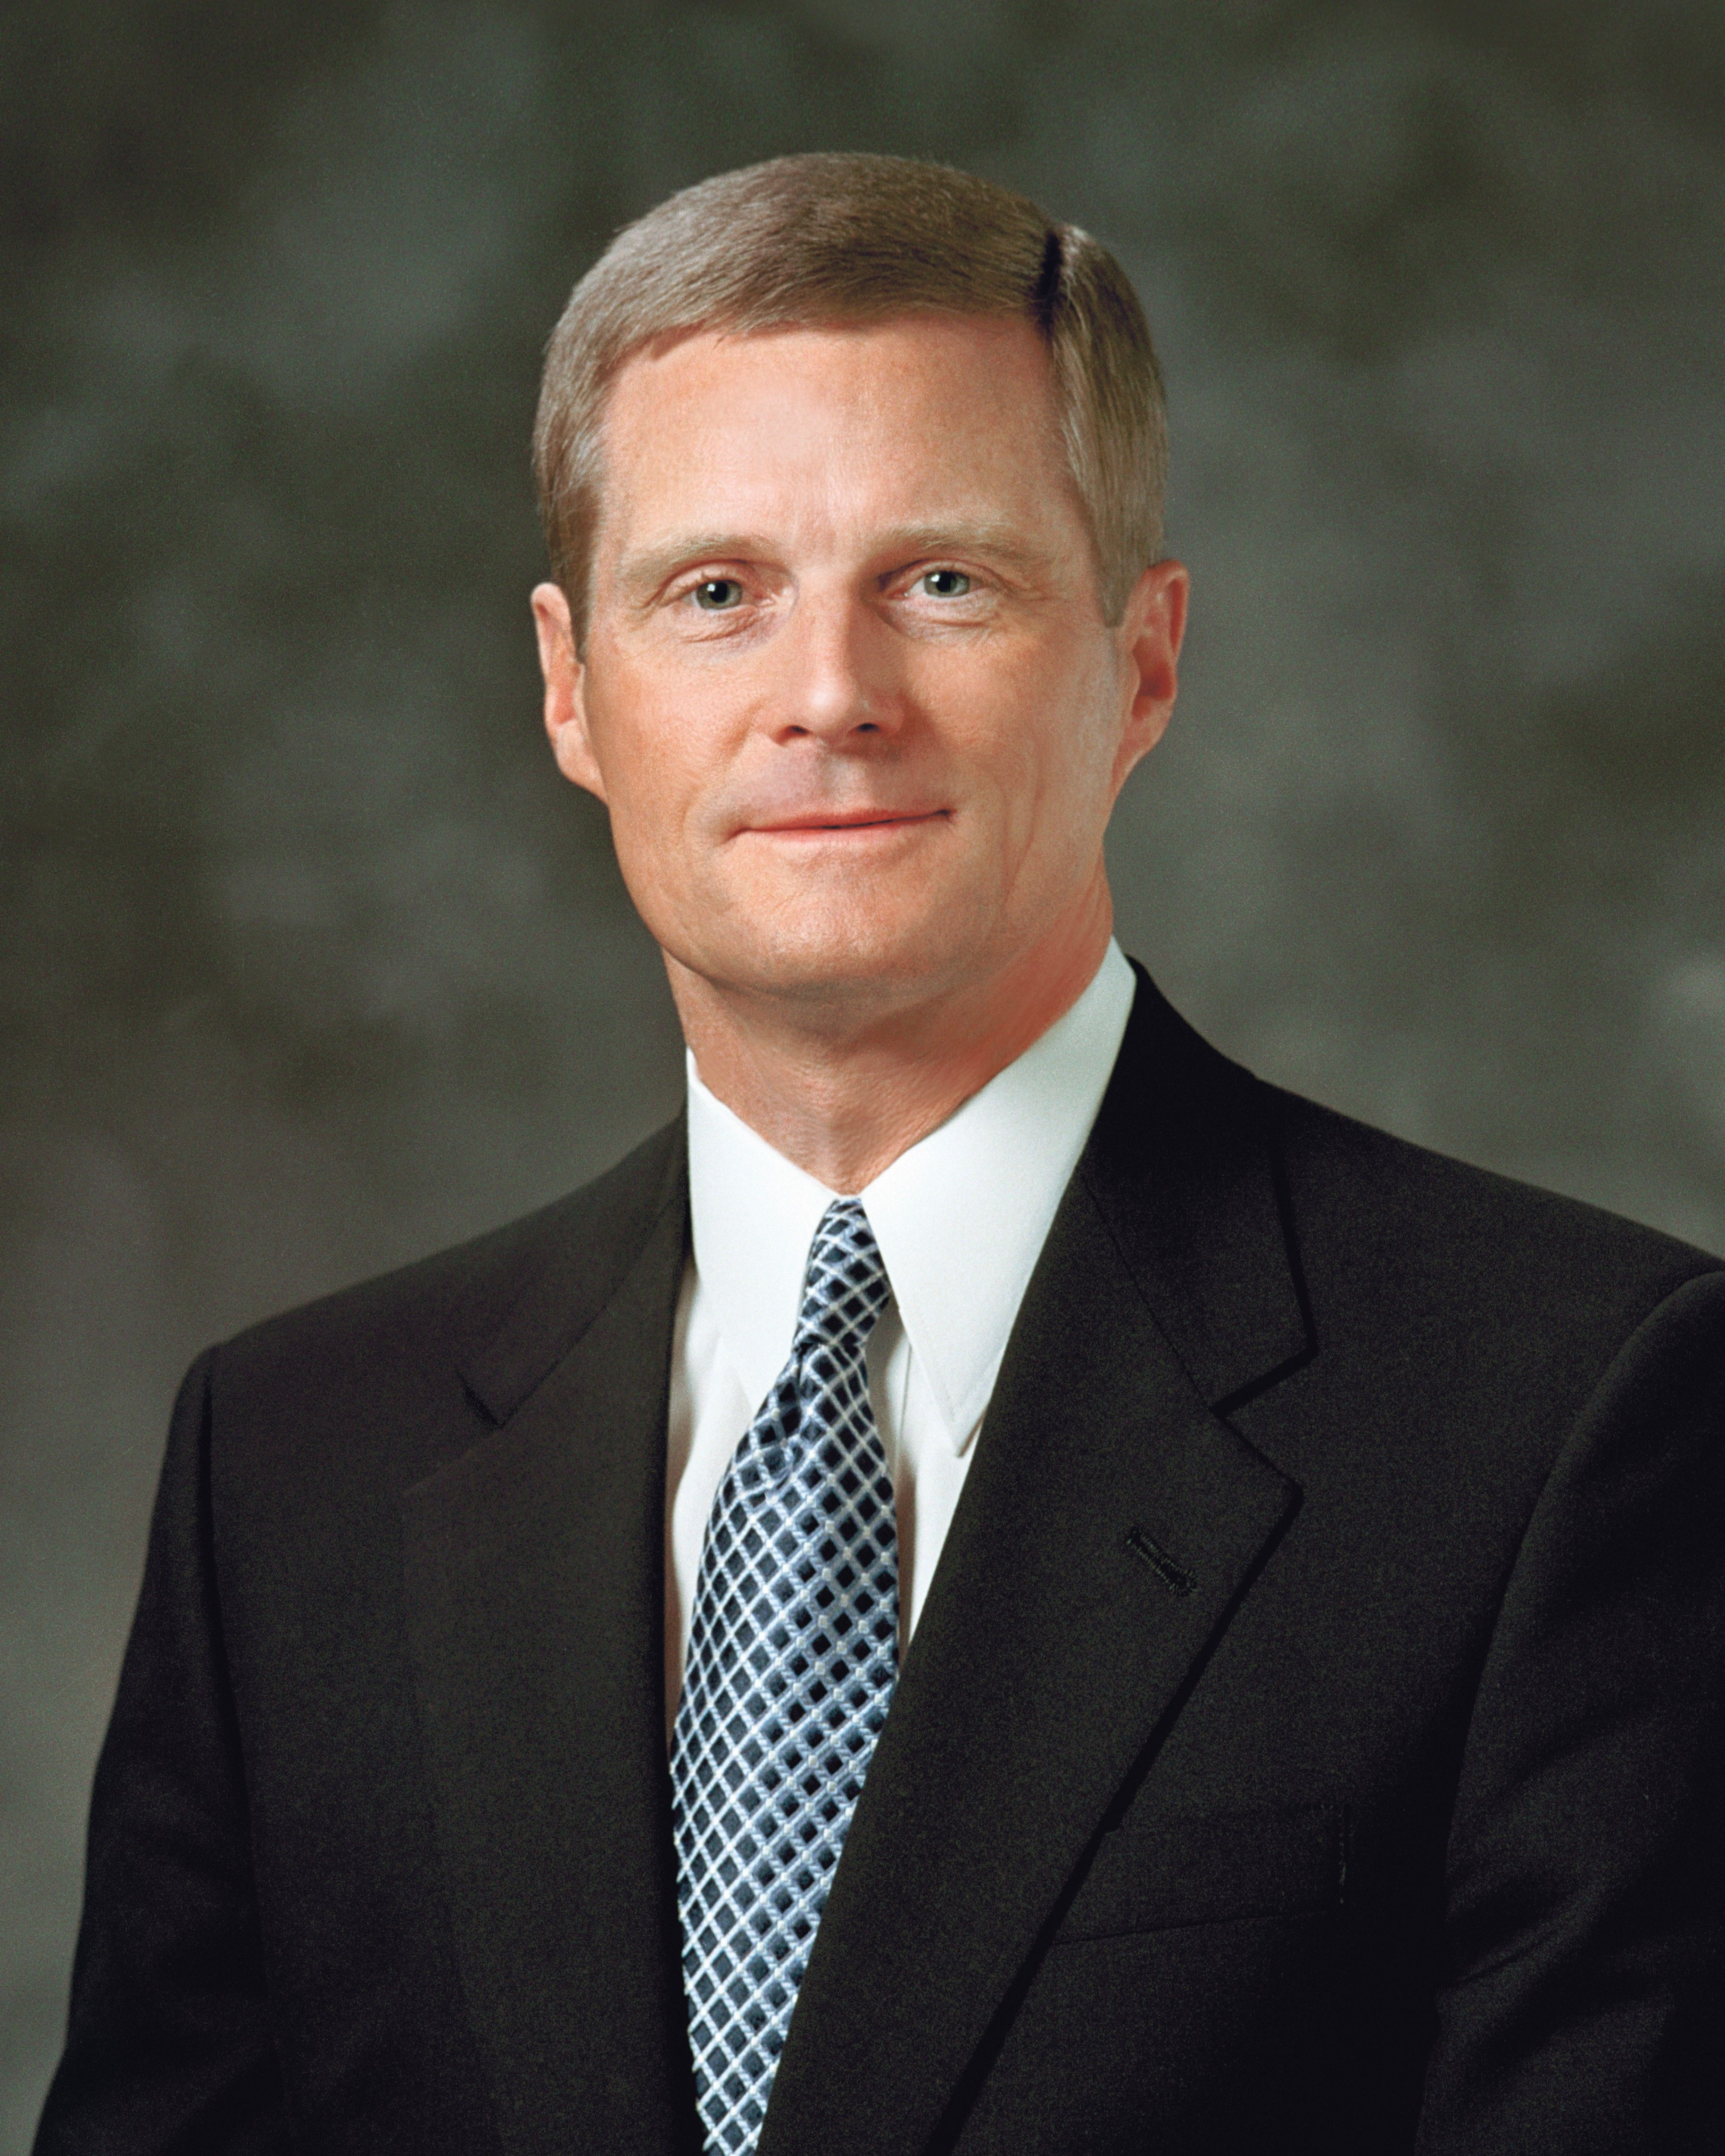 Former official portrait of David A. Bednar.  Replaced August 2020.